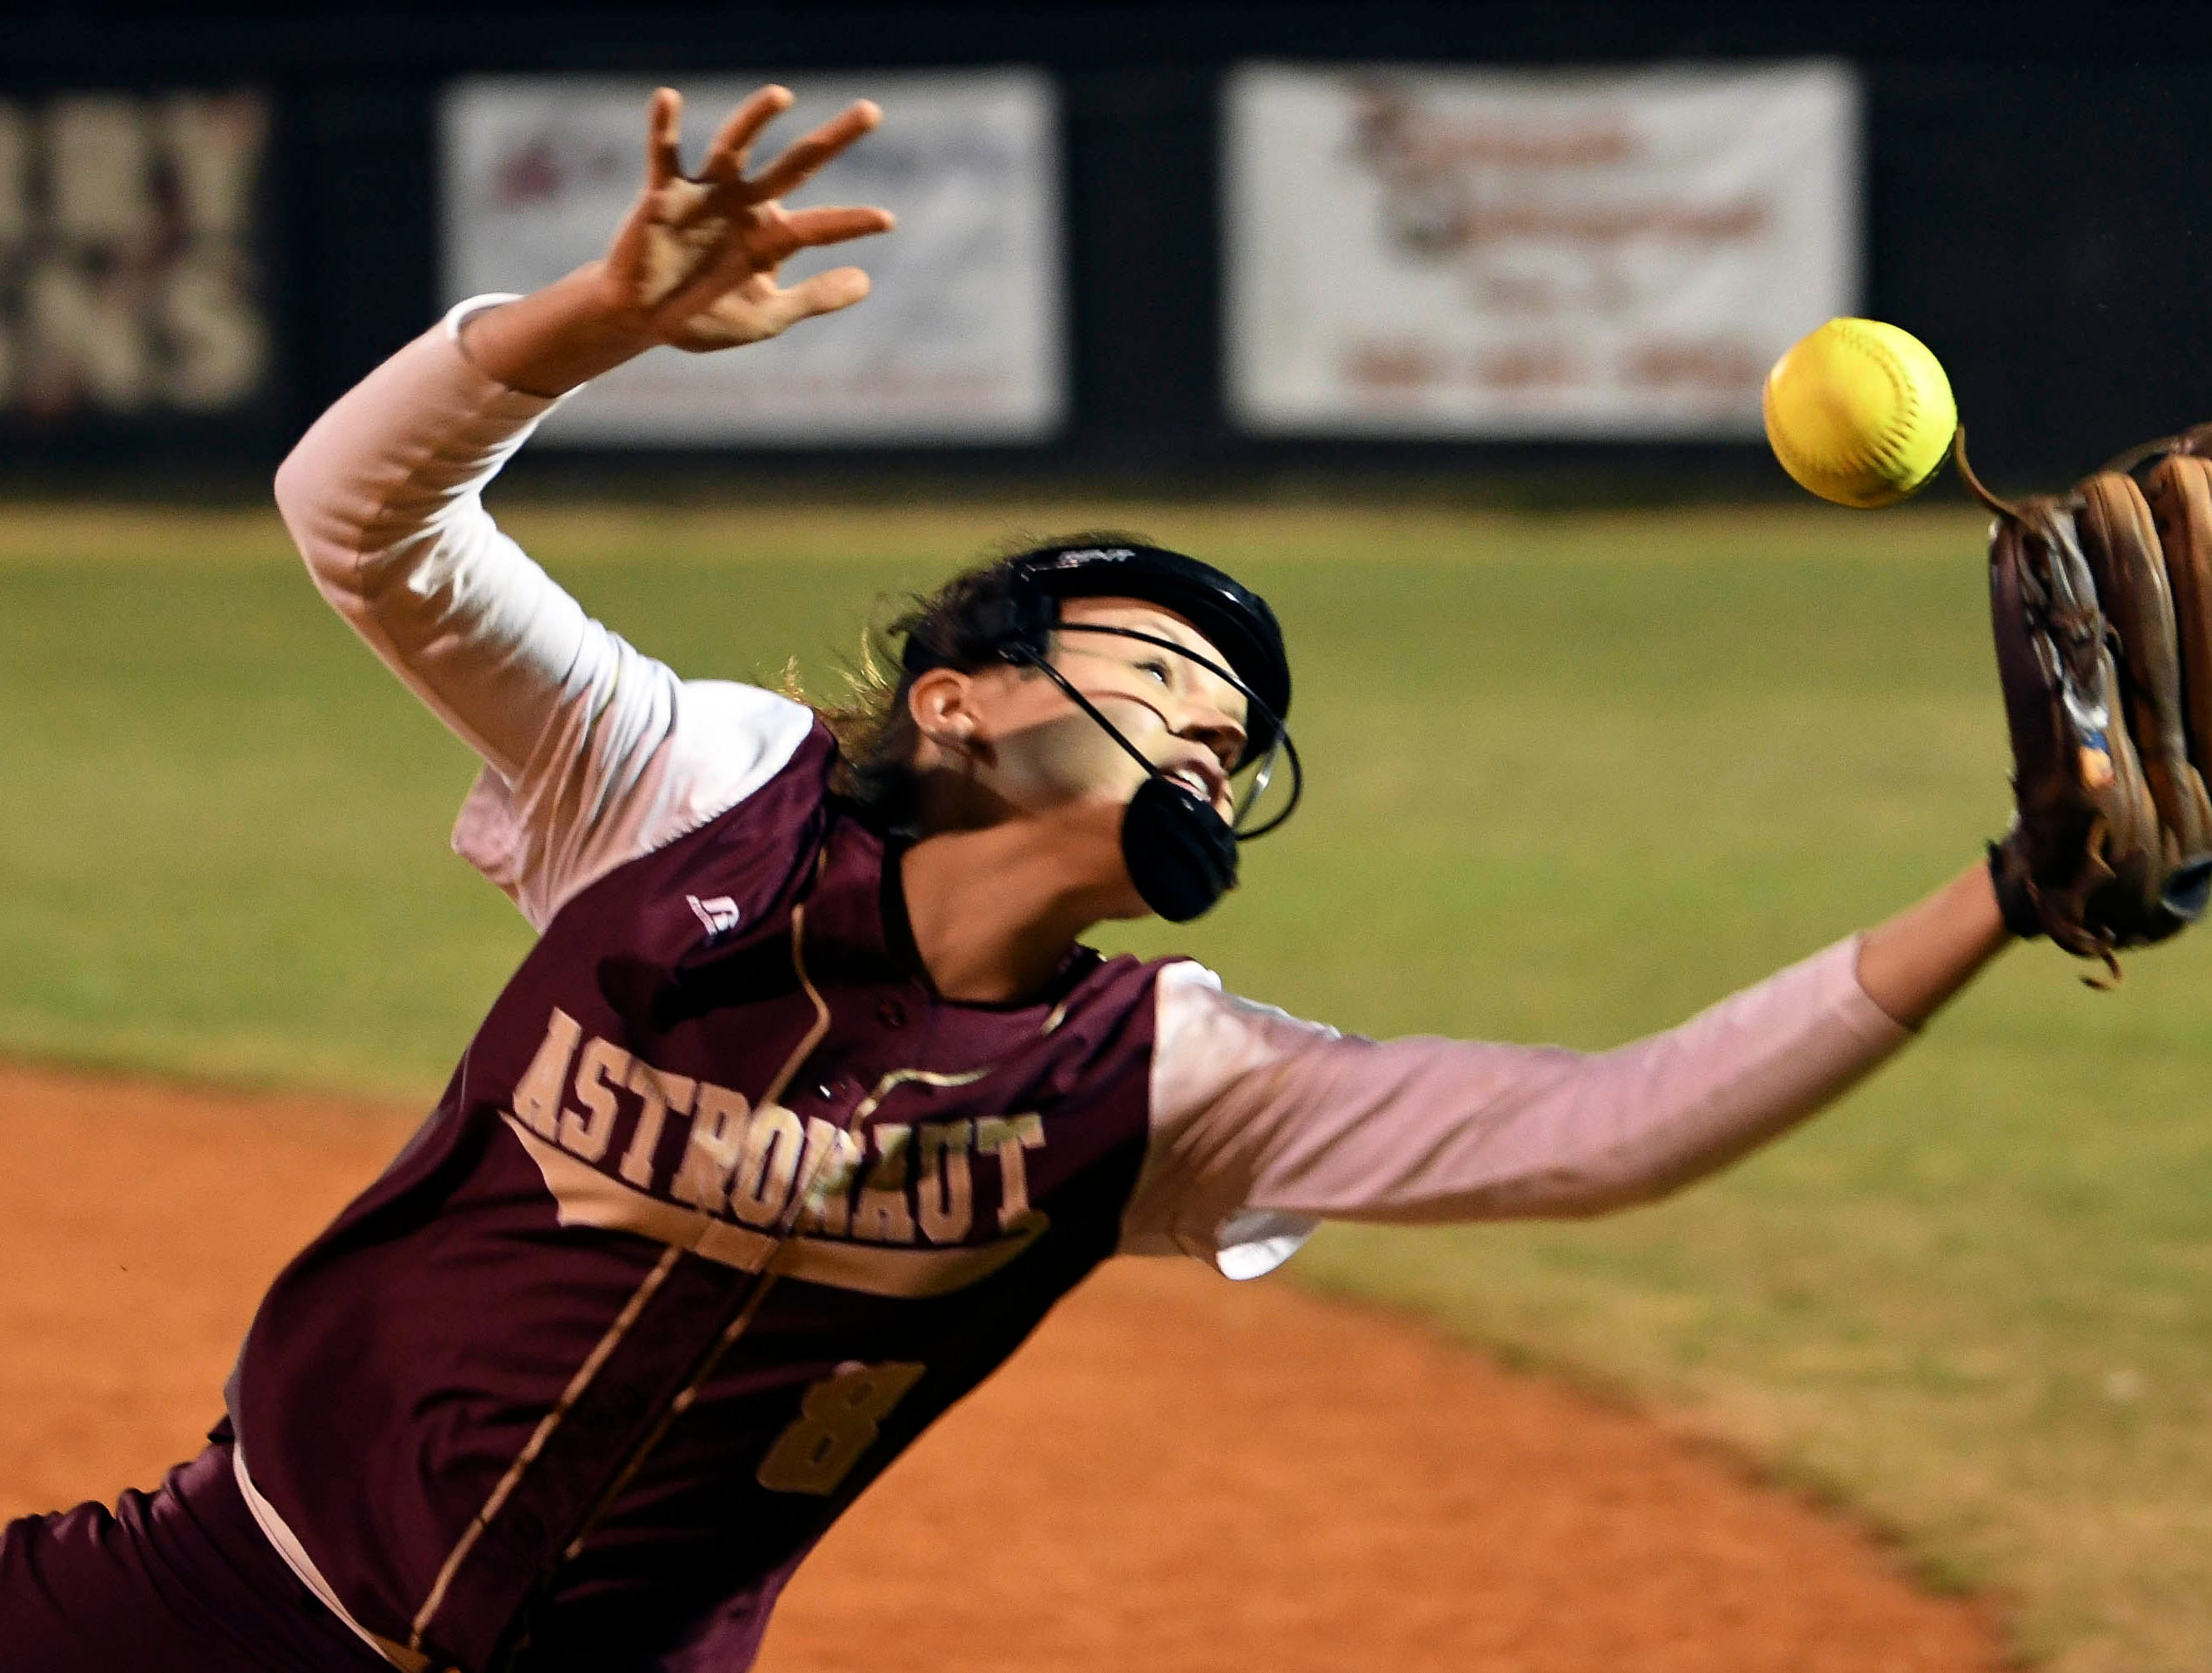 J. Lenders of Astronaut dives for a ball just out of reach during Wednesday's game in Rockledge